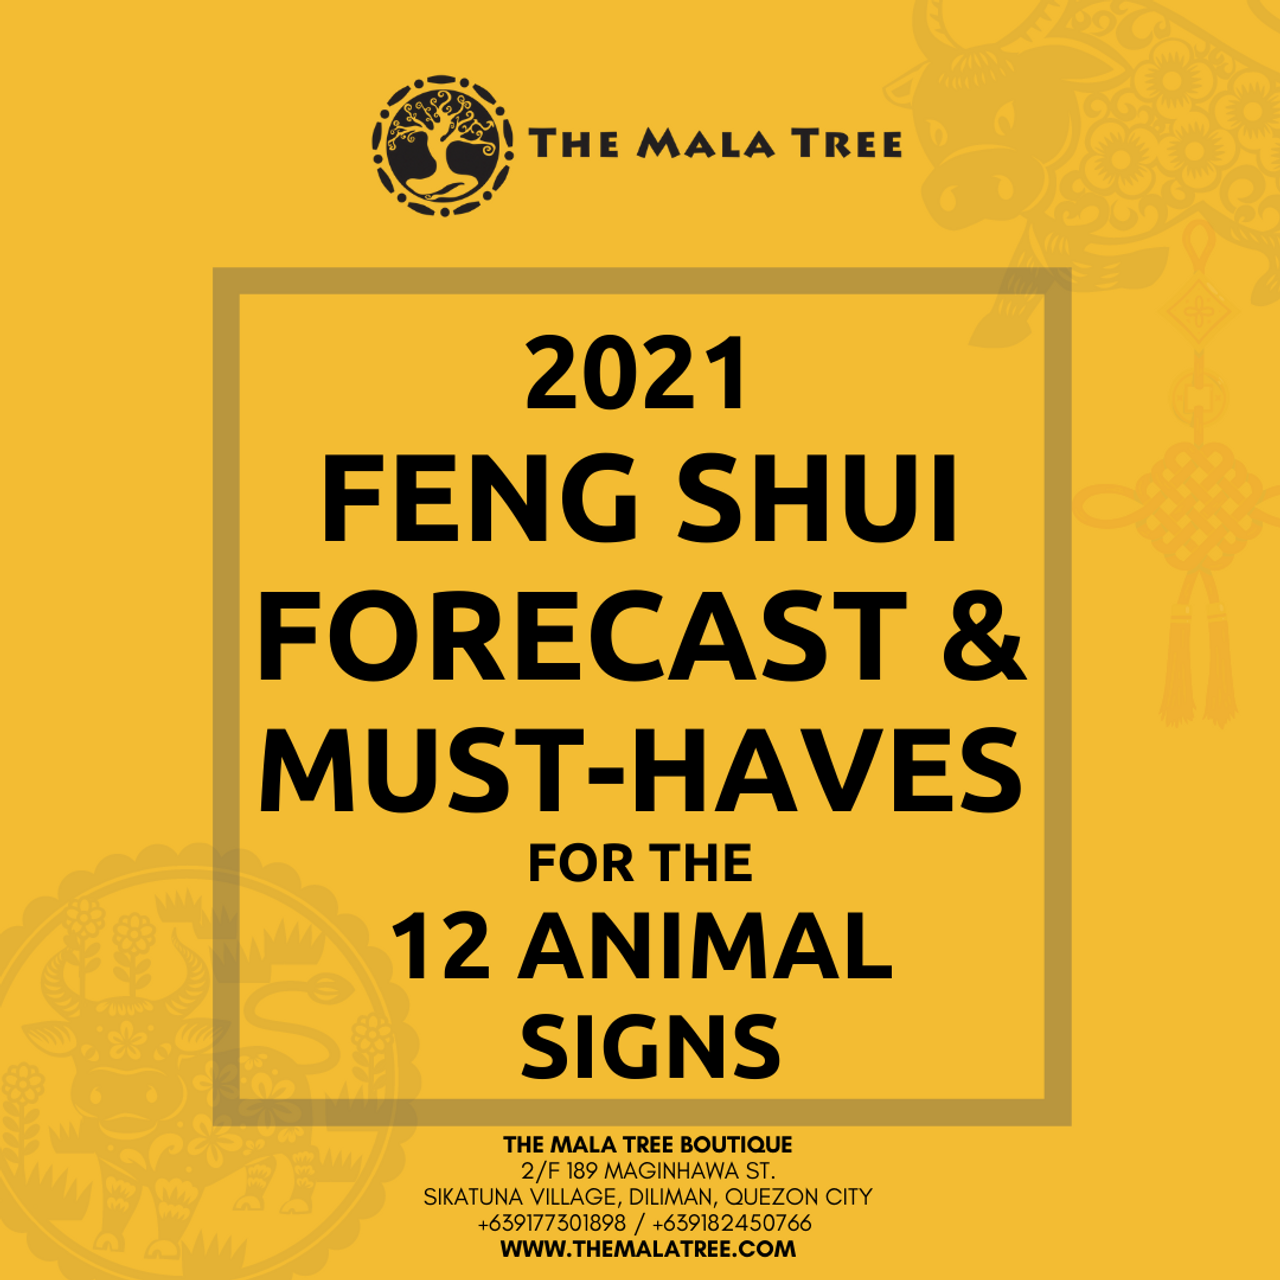 2021 FENG SHUI MUST-HAVES FOR THE 12 SIGNS